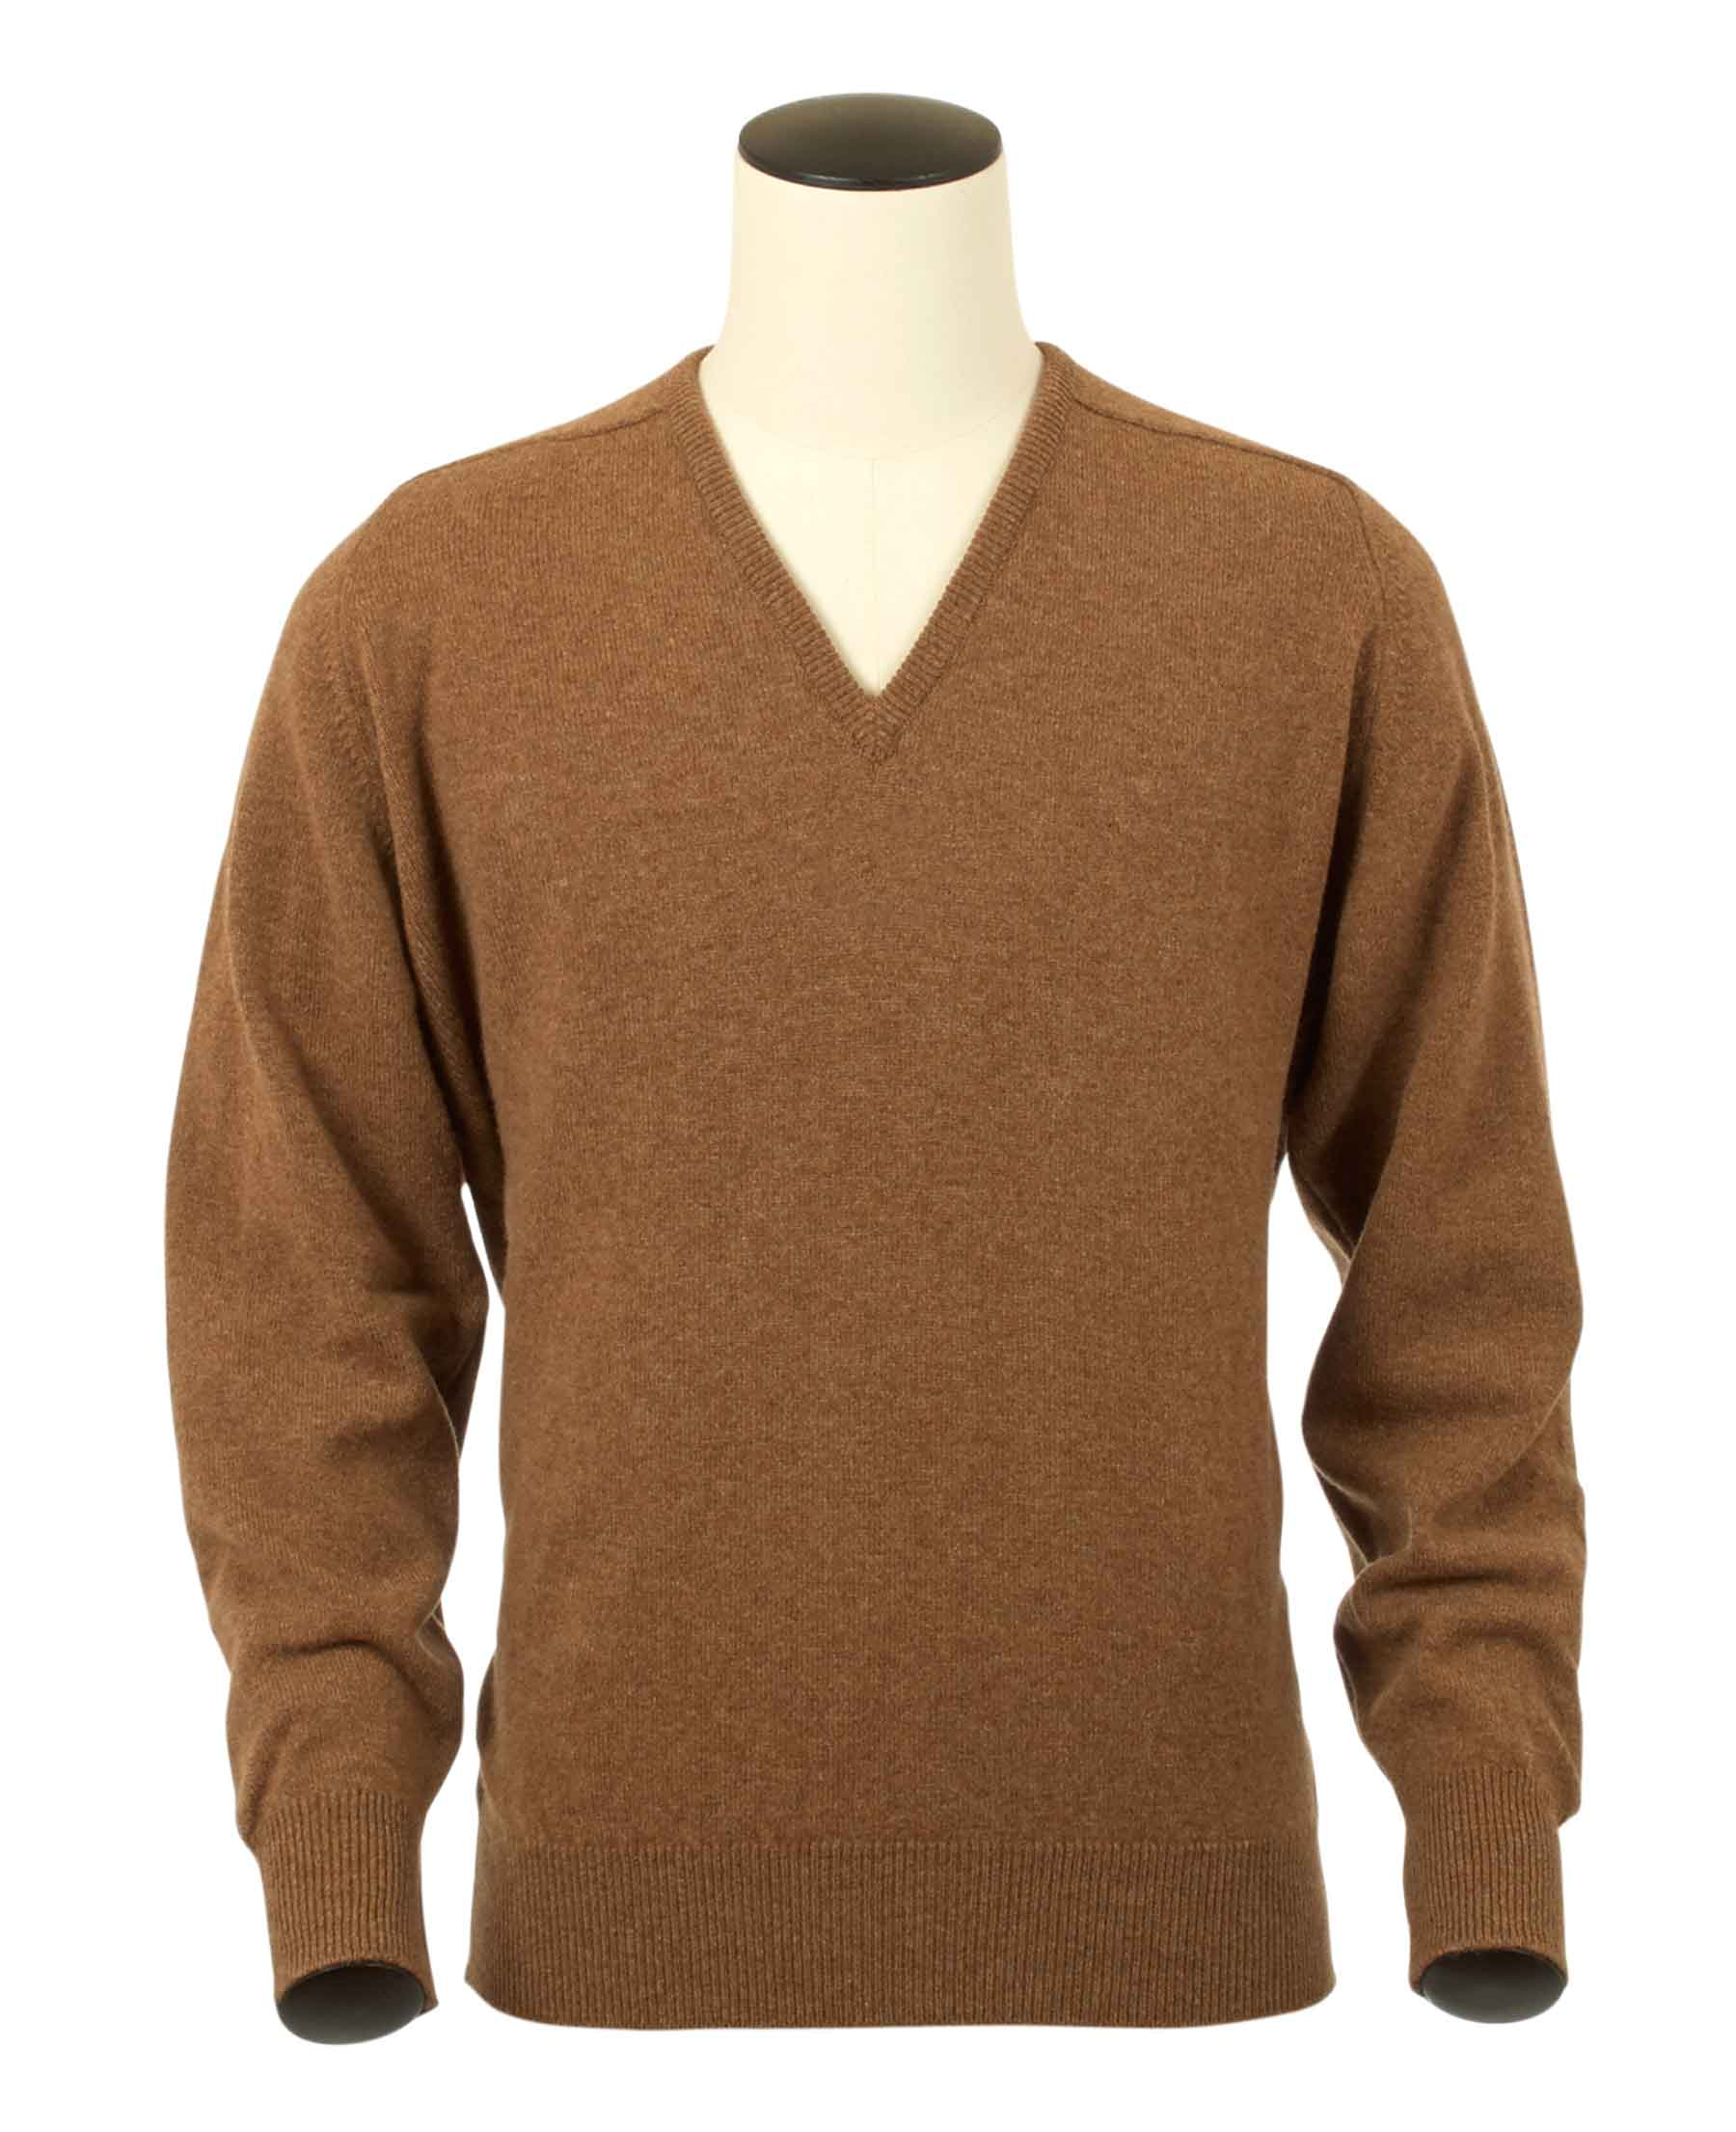 Scott, Couleur Savannah, Pull col V en 100% lambswool - Vêtements laine geelong